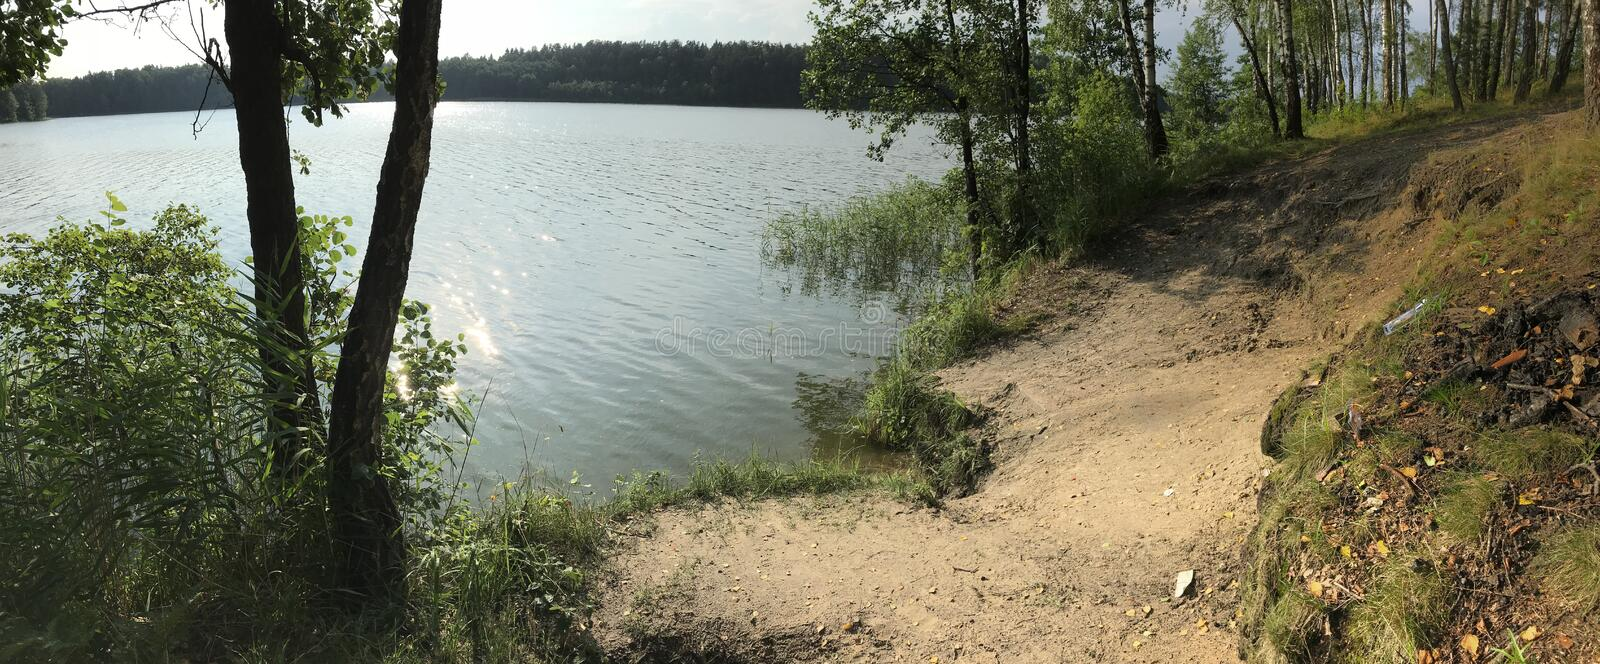 Lakes of Lithuania. Little beach at forest lake royalty free stock images